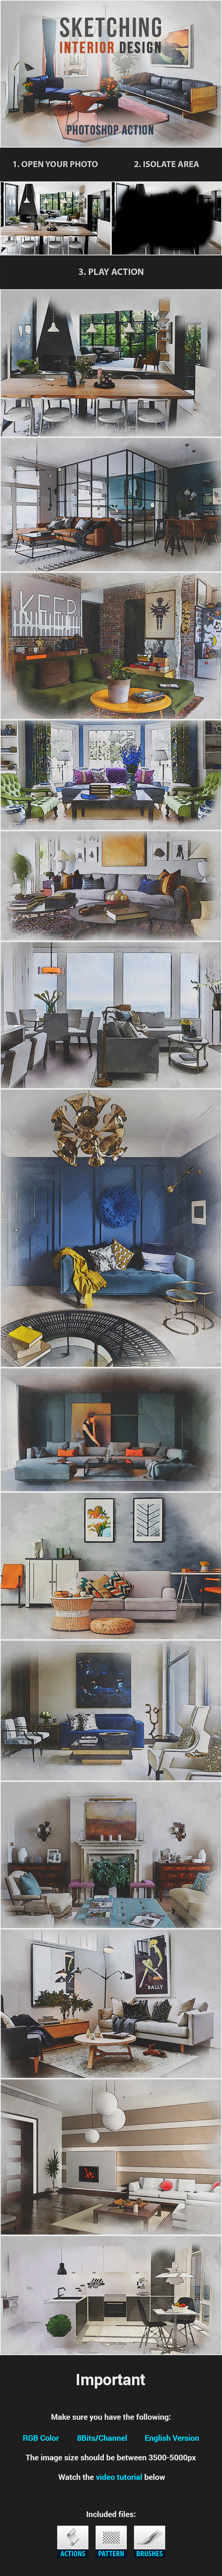 Sketching Interior Design - Photo Effects Actions